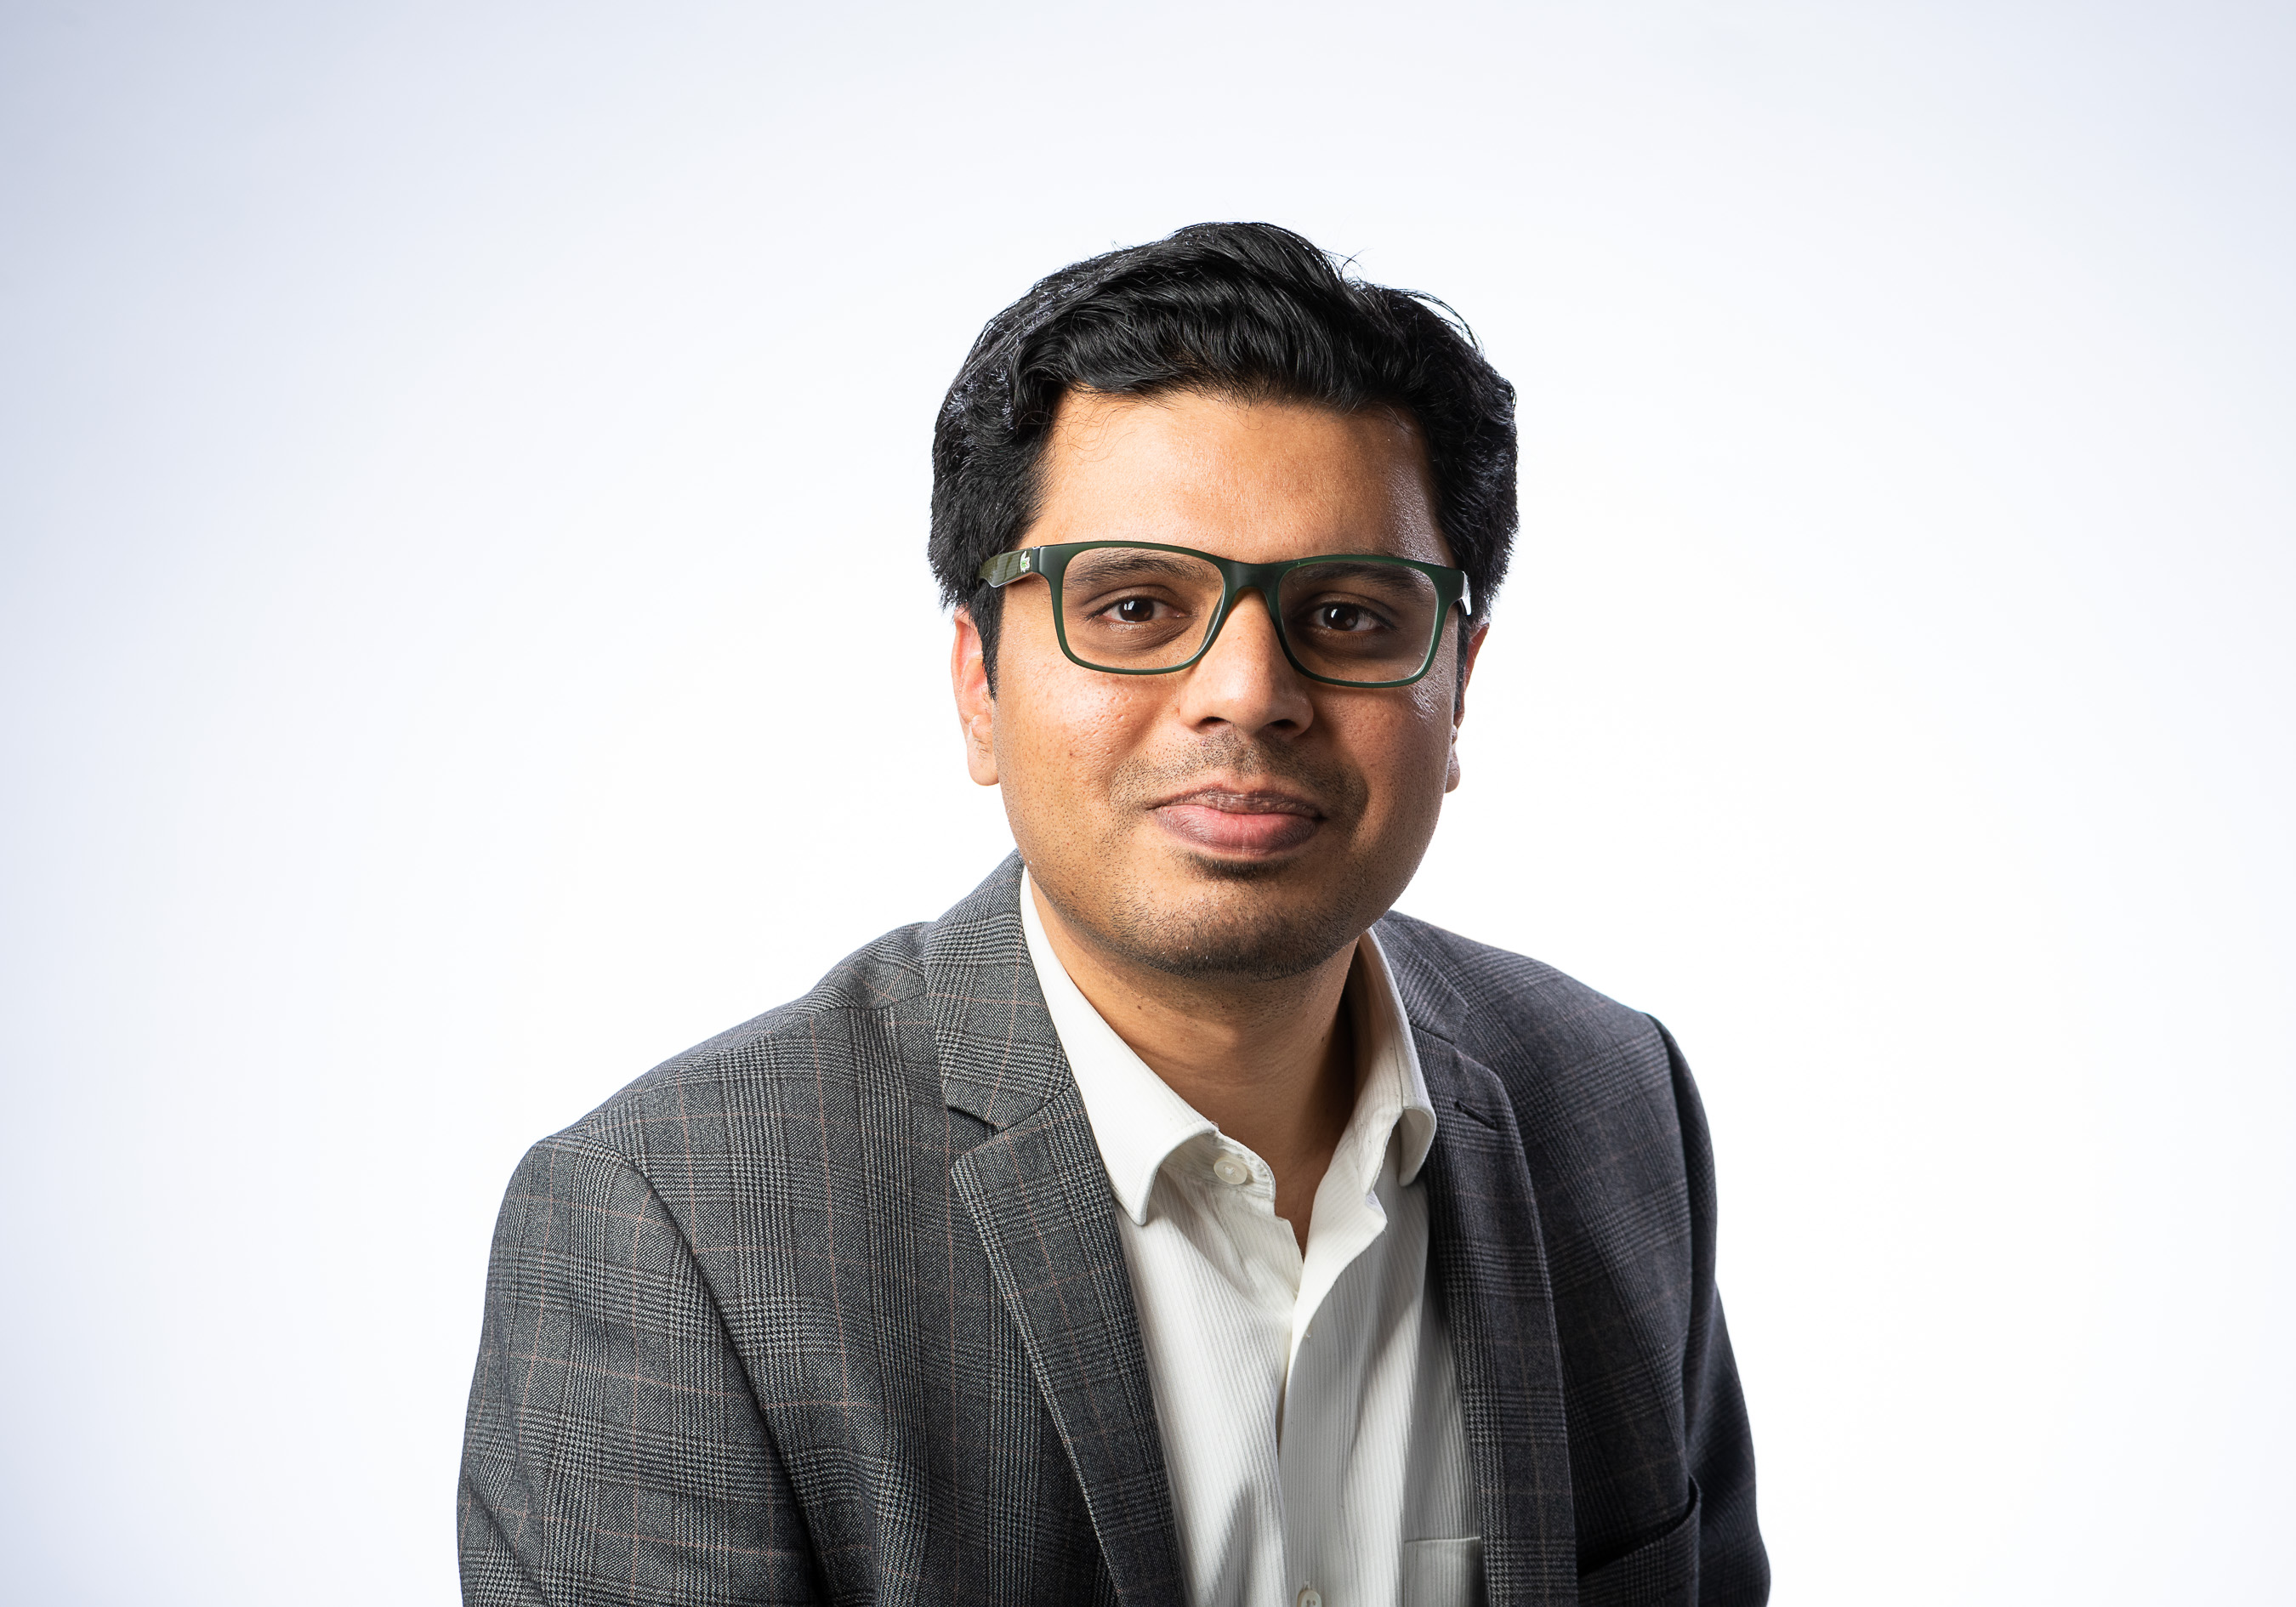 Photo of Vivek Soundararajan